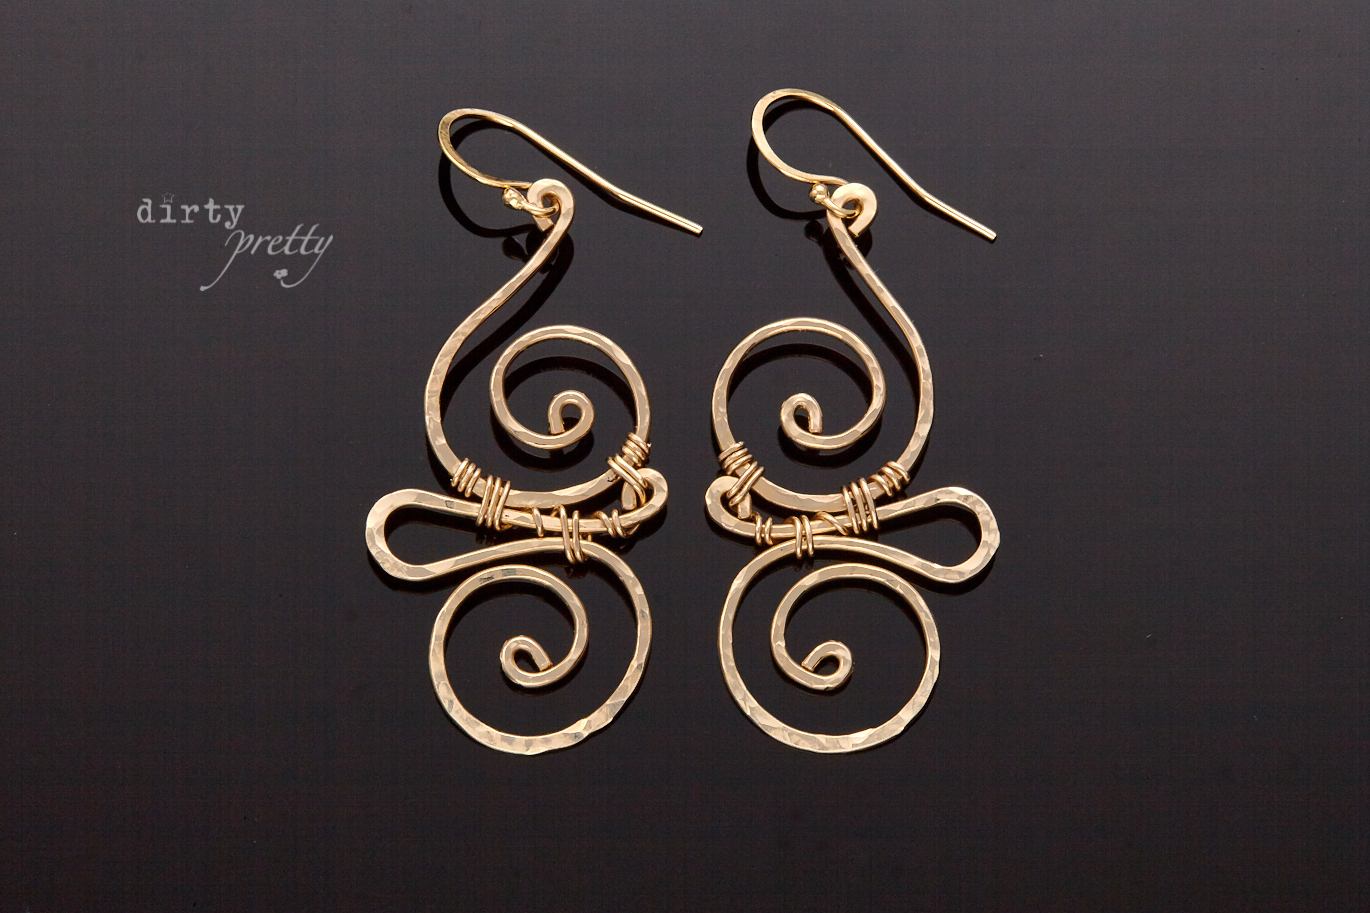 14th Anniversary Gifts For Her Whimsy Gold Earrings By Dirtypretty Artwear